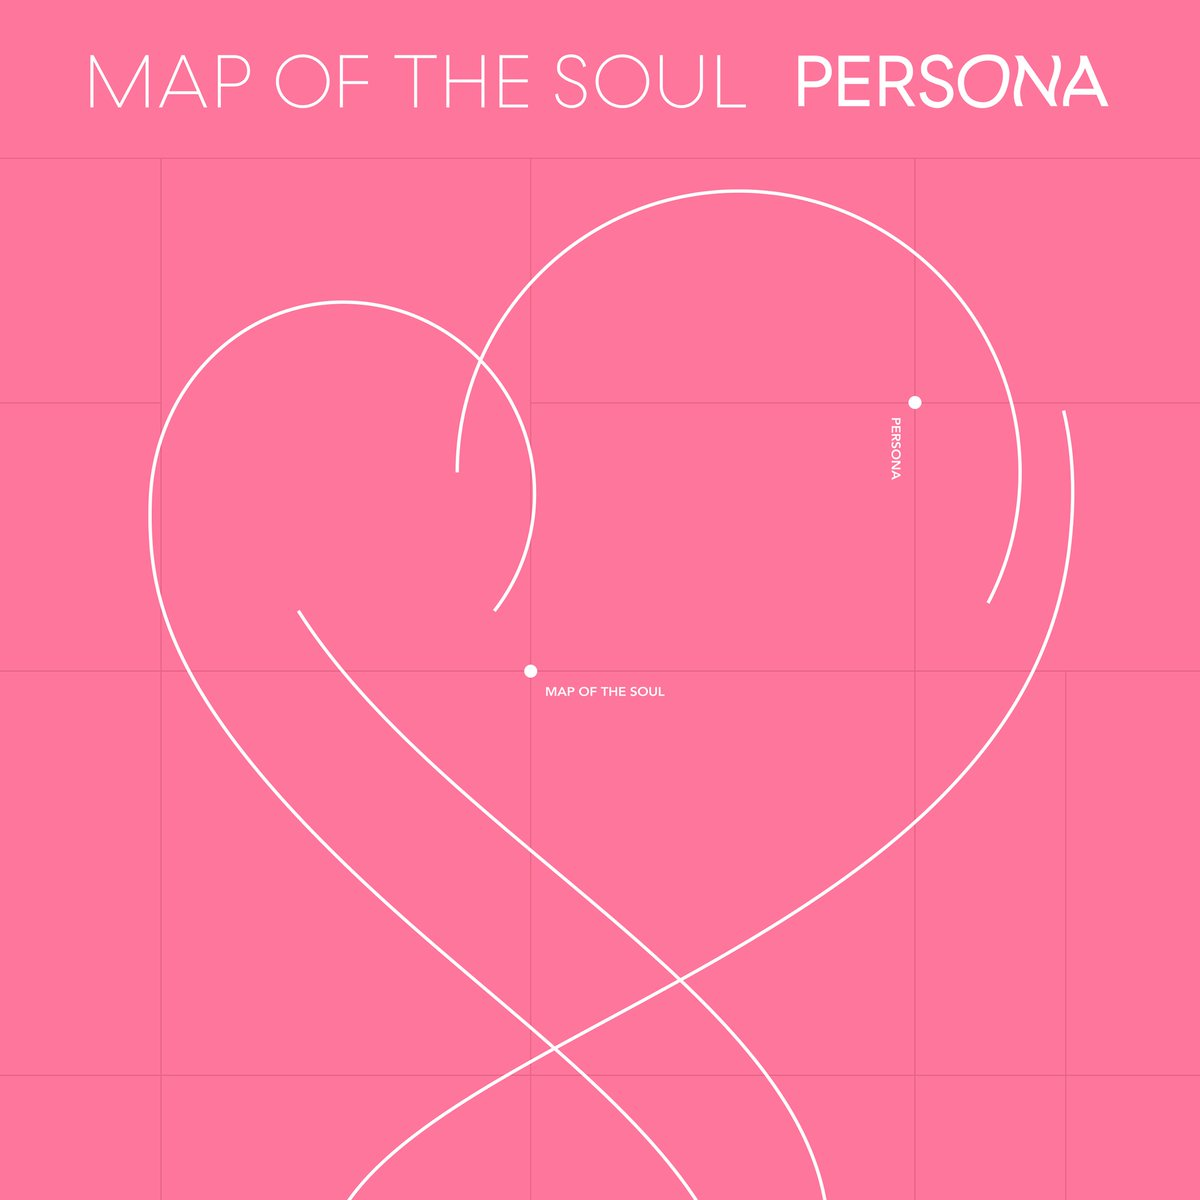 Map of the Soul: Persona | BTS Wiki | FANDOM powered by Wikia